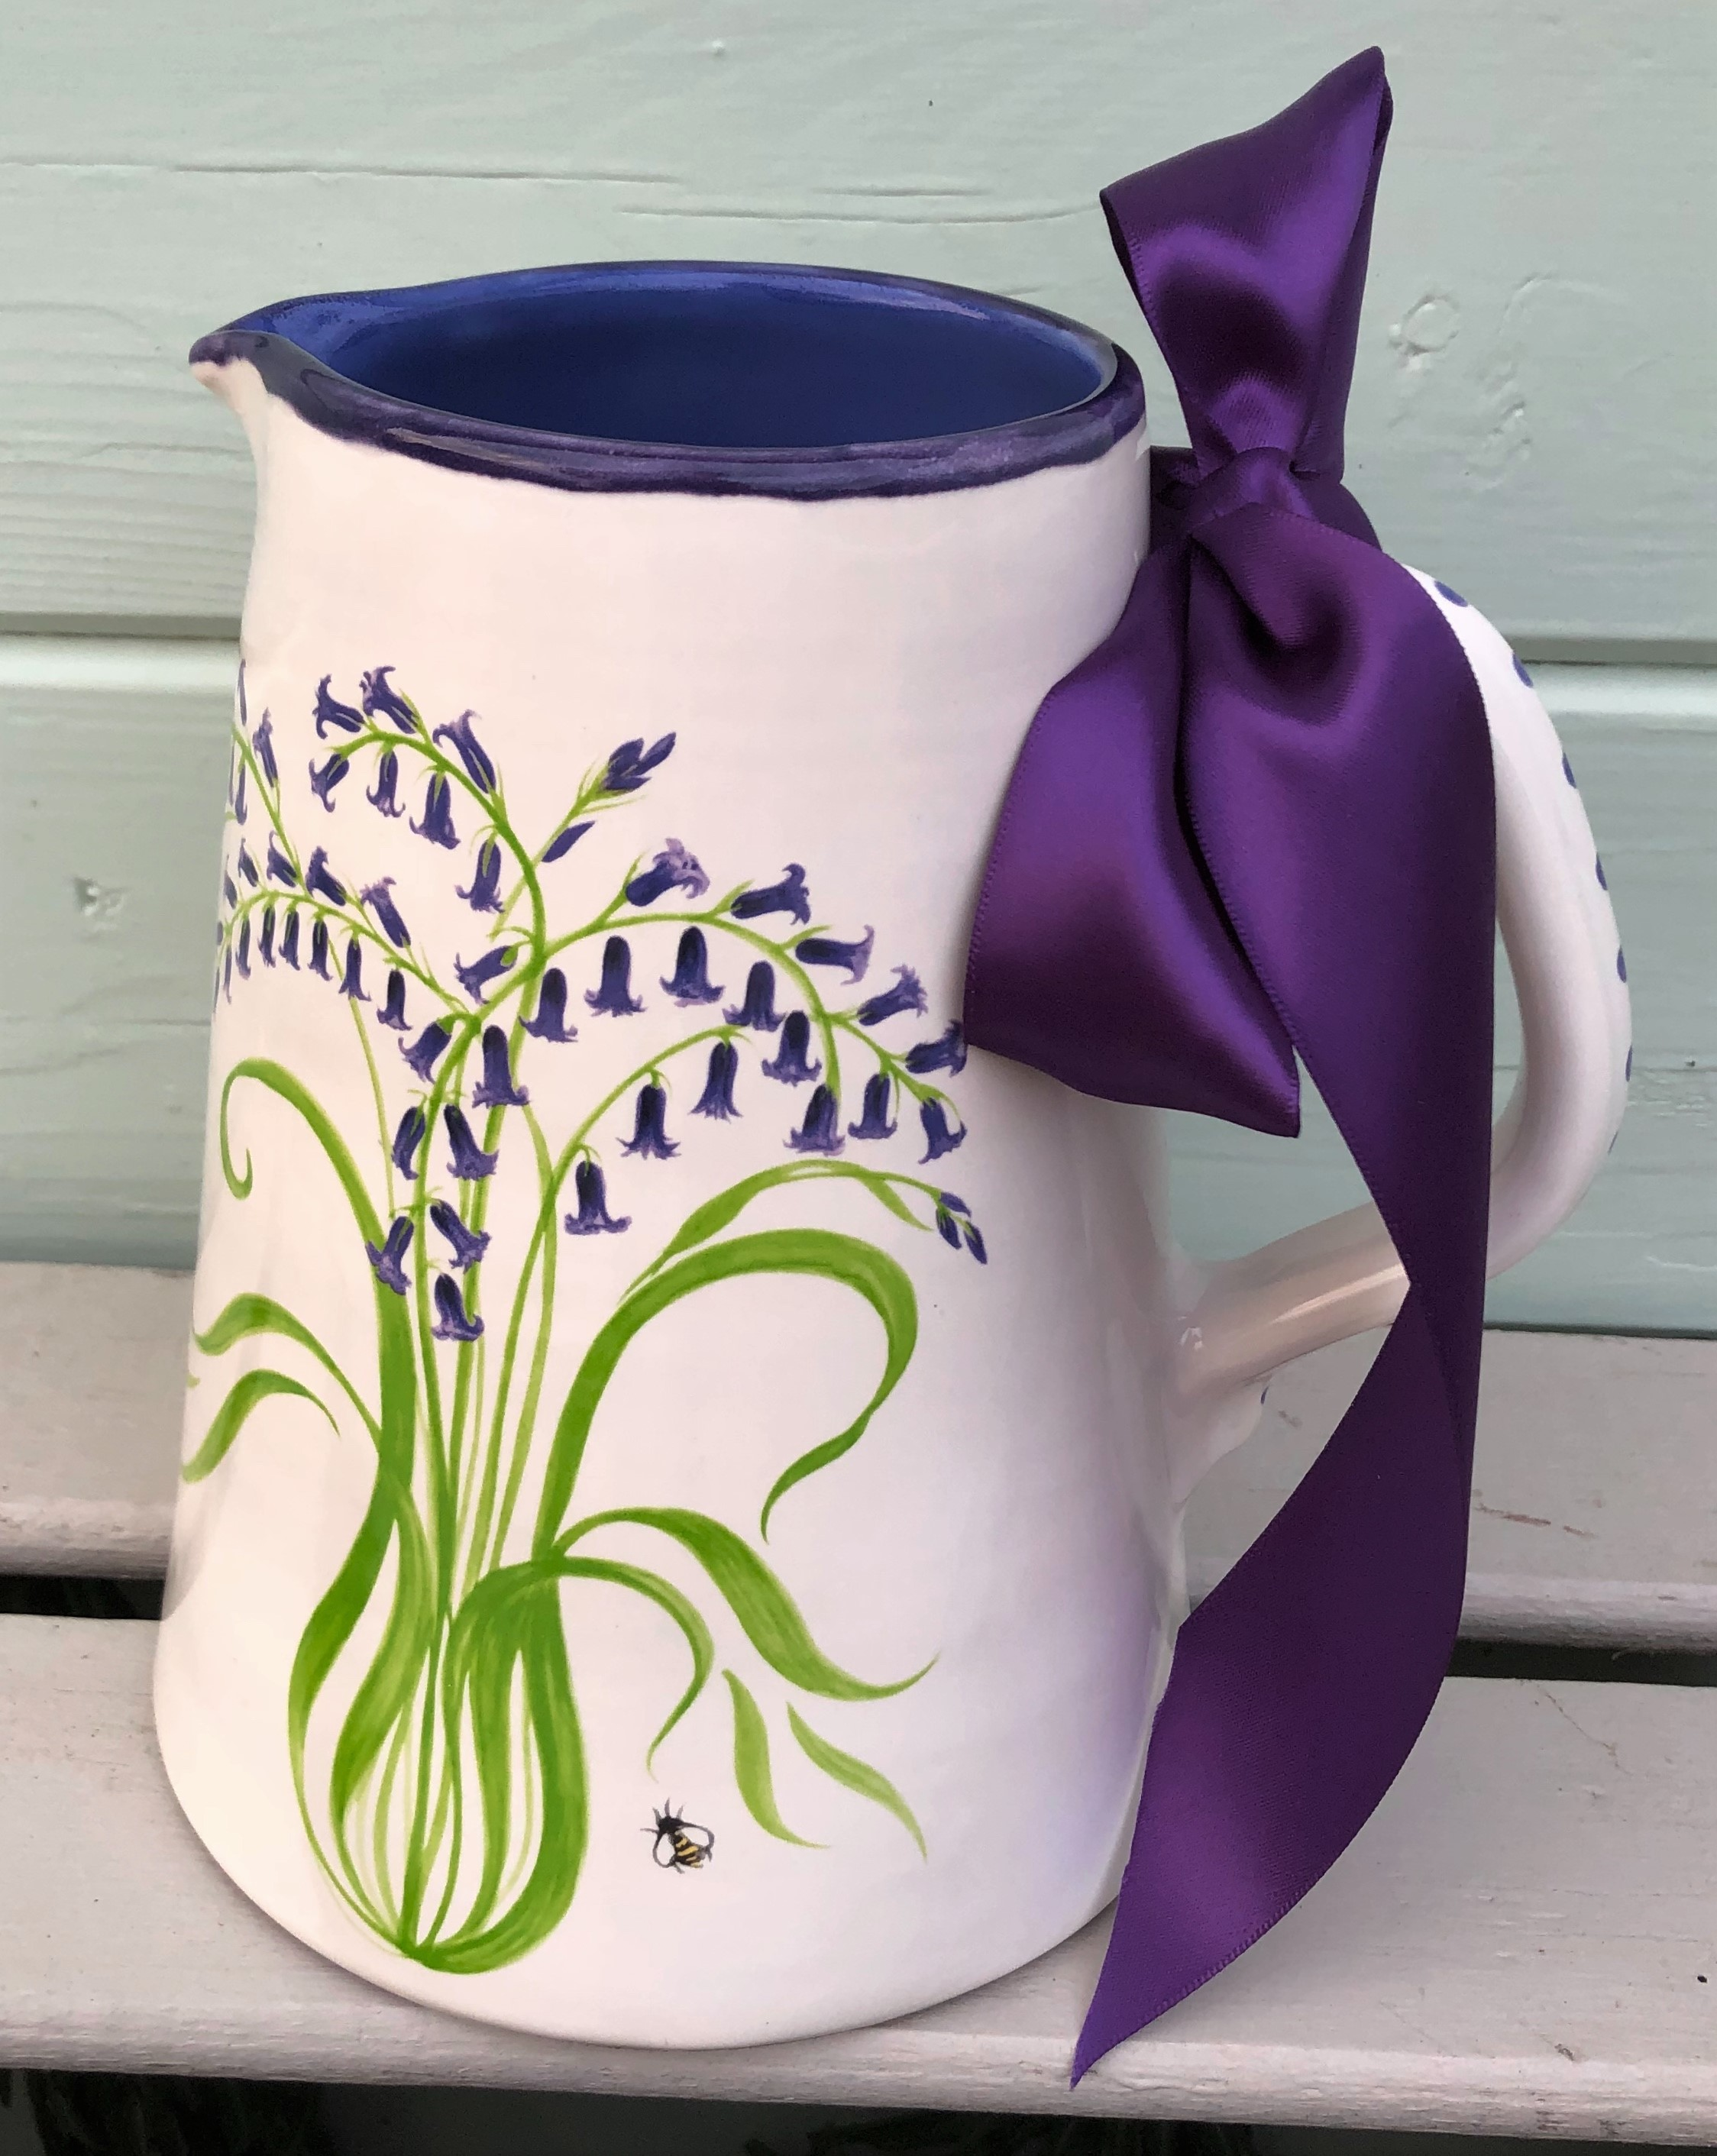 Bluebell Pottery Jug £65